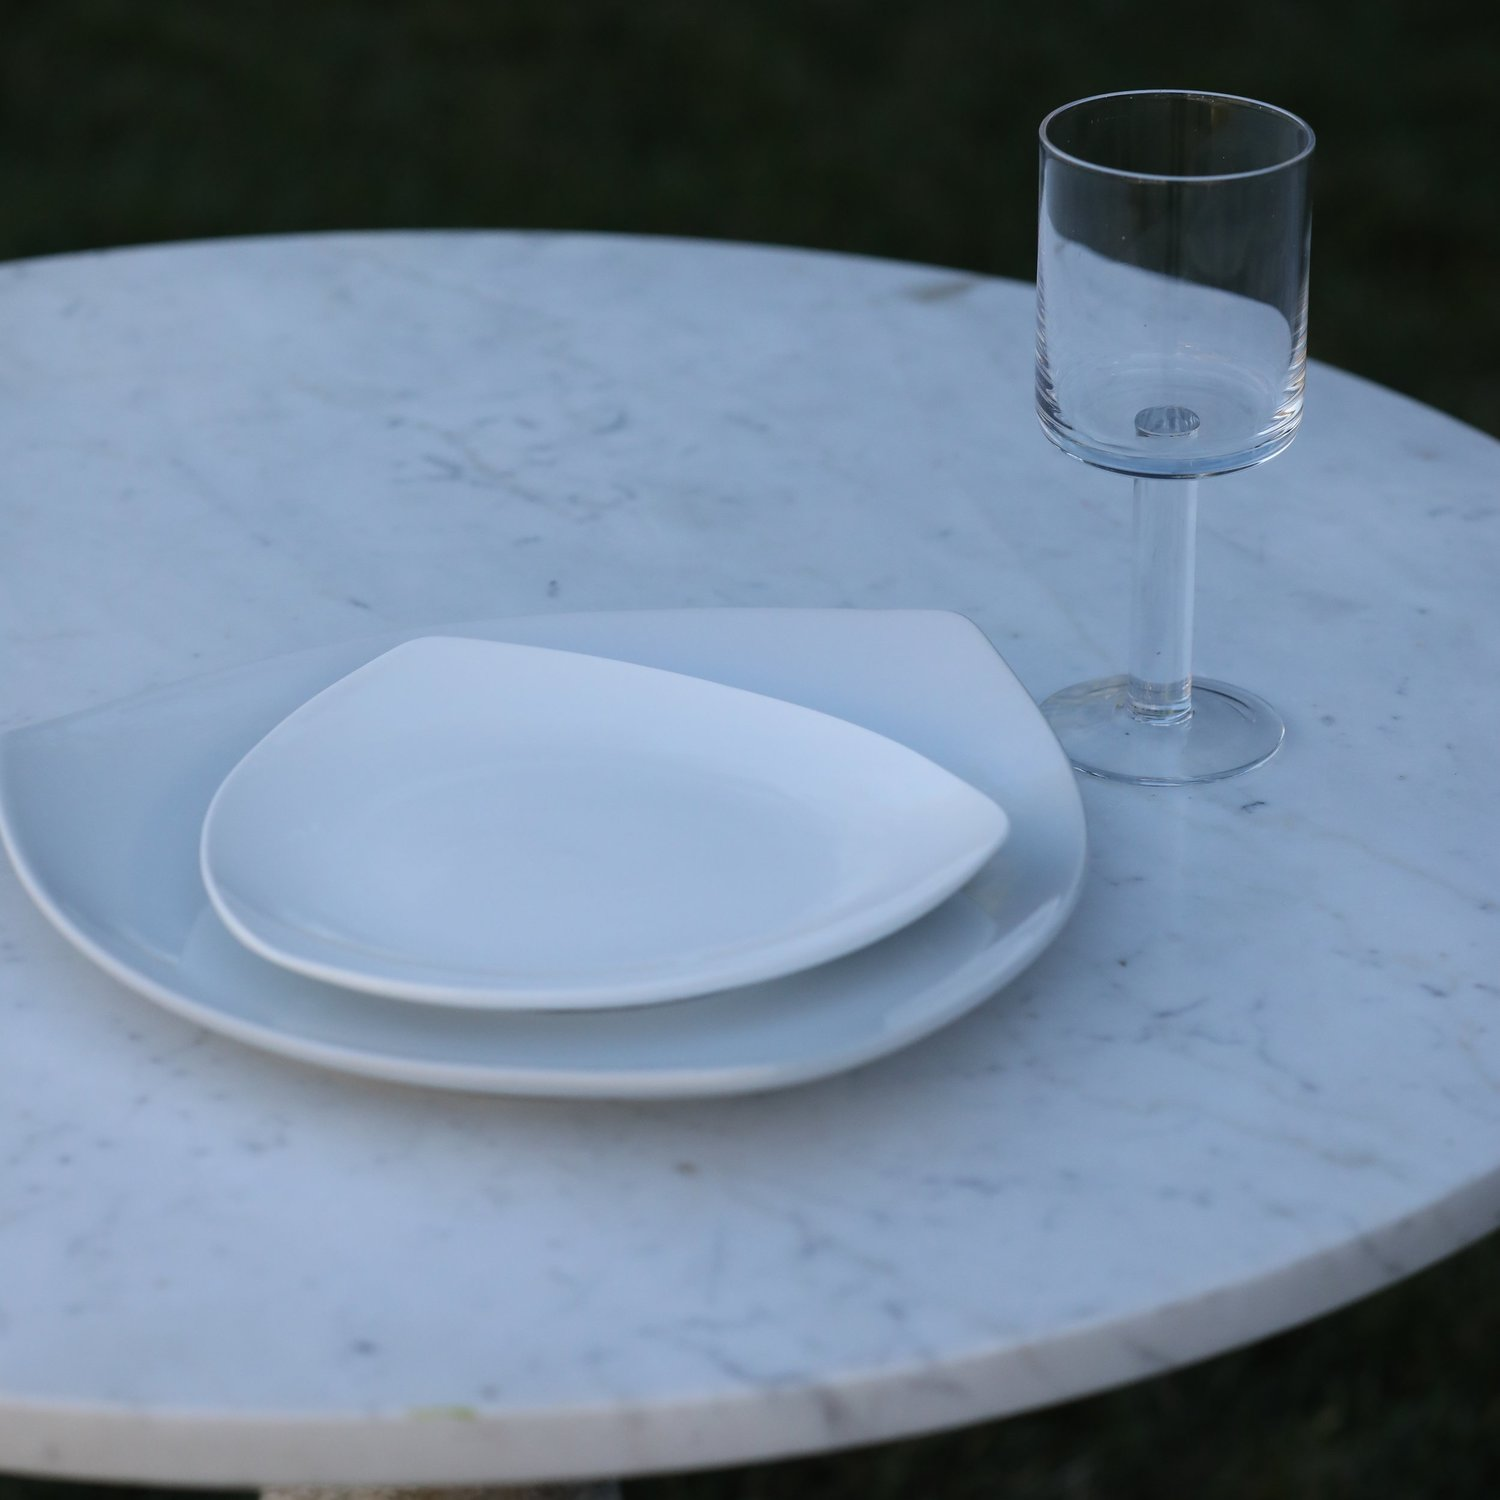 White triangle contemporary table setting with square goblet on marble round table. All items available to rent in Murrieta, part of the Temecula Valley.